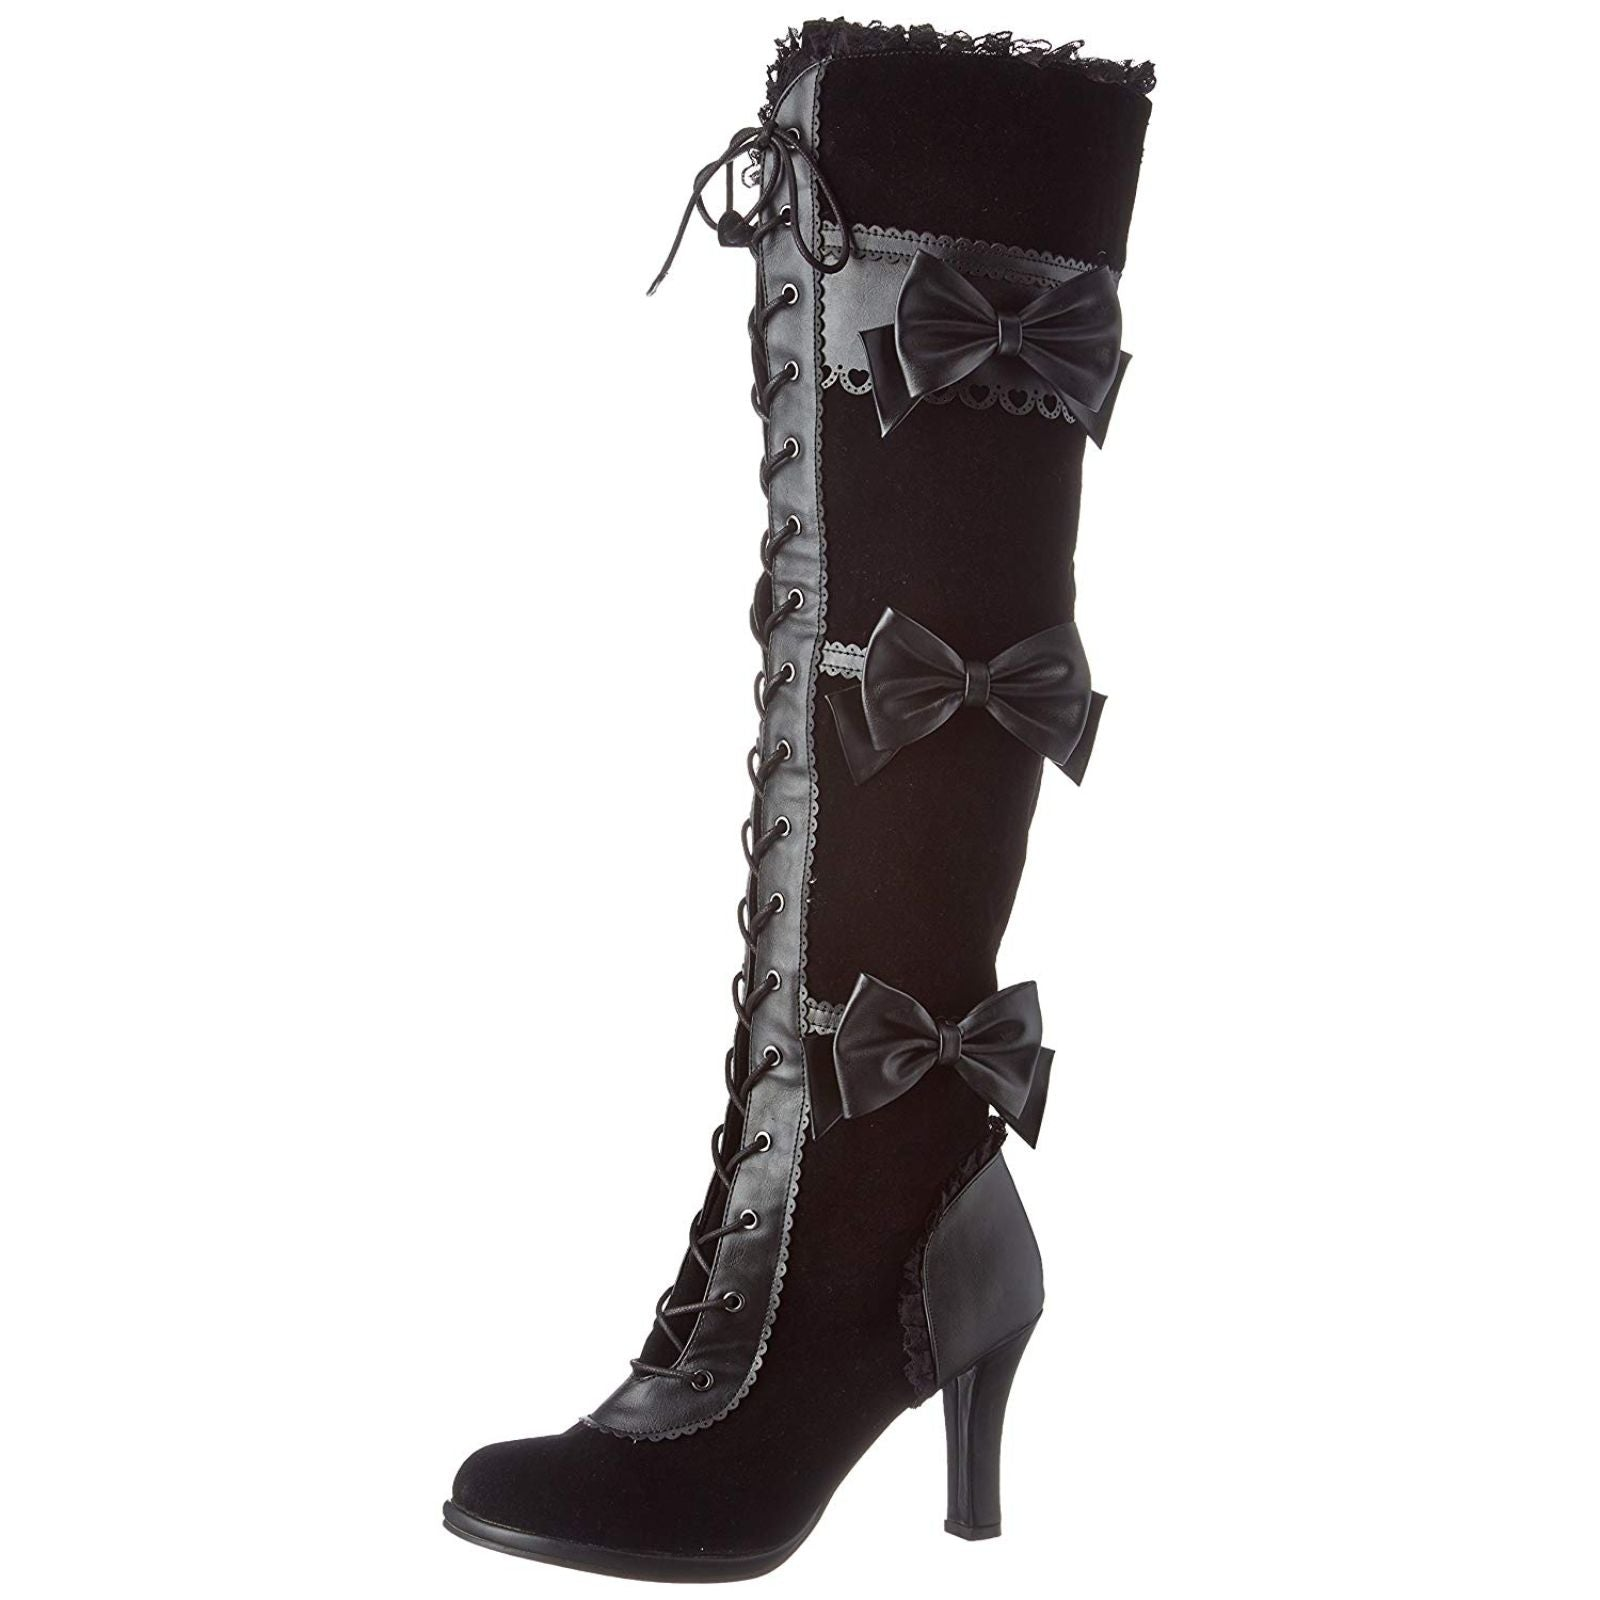 Demonia EMILY-375 Women/'s Punk Goth Black Platform Thigh-High Lace-Up Vegan Boot